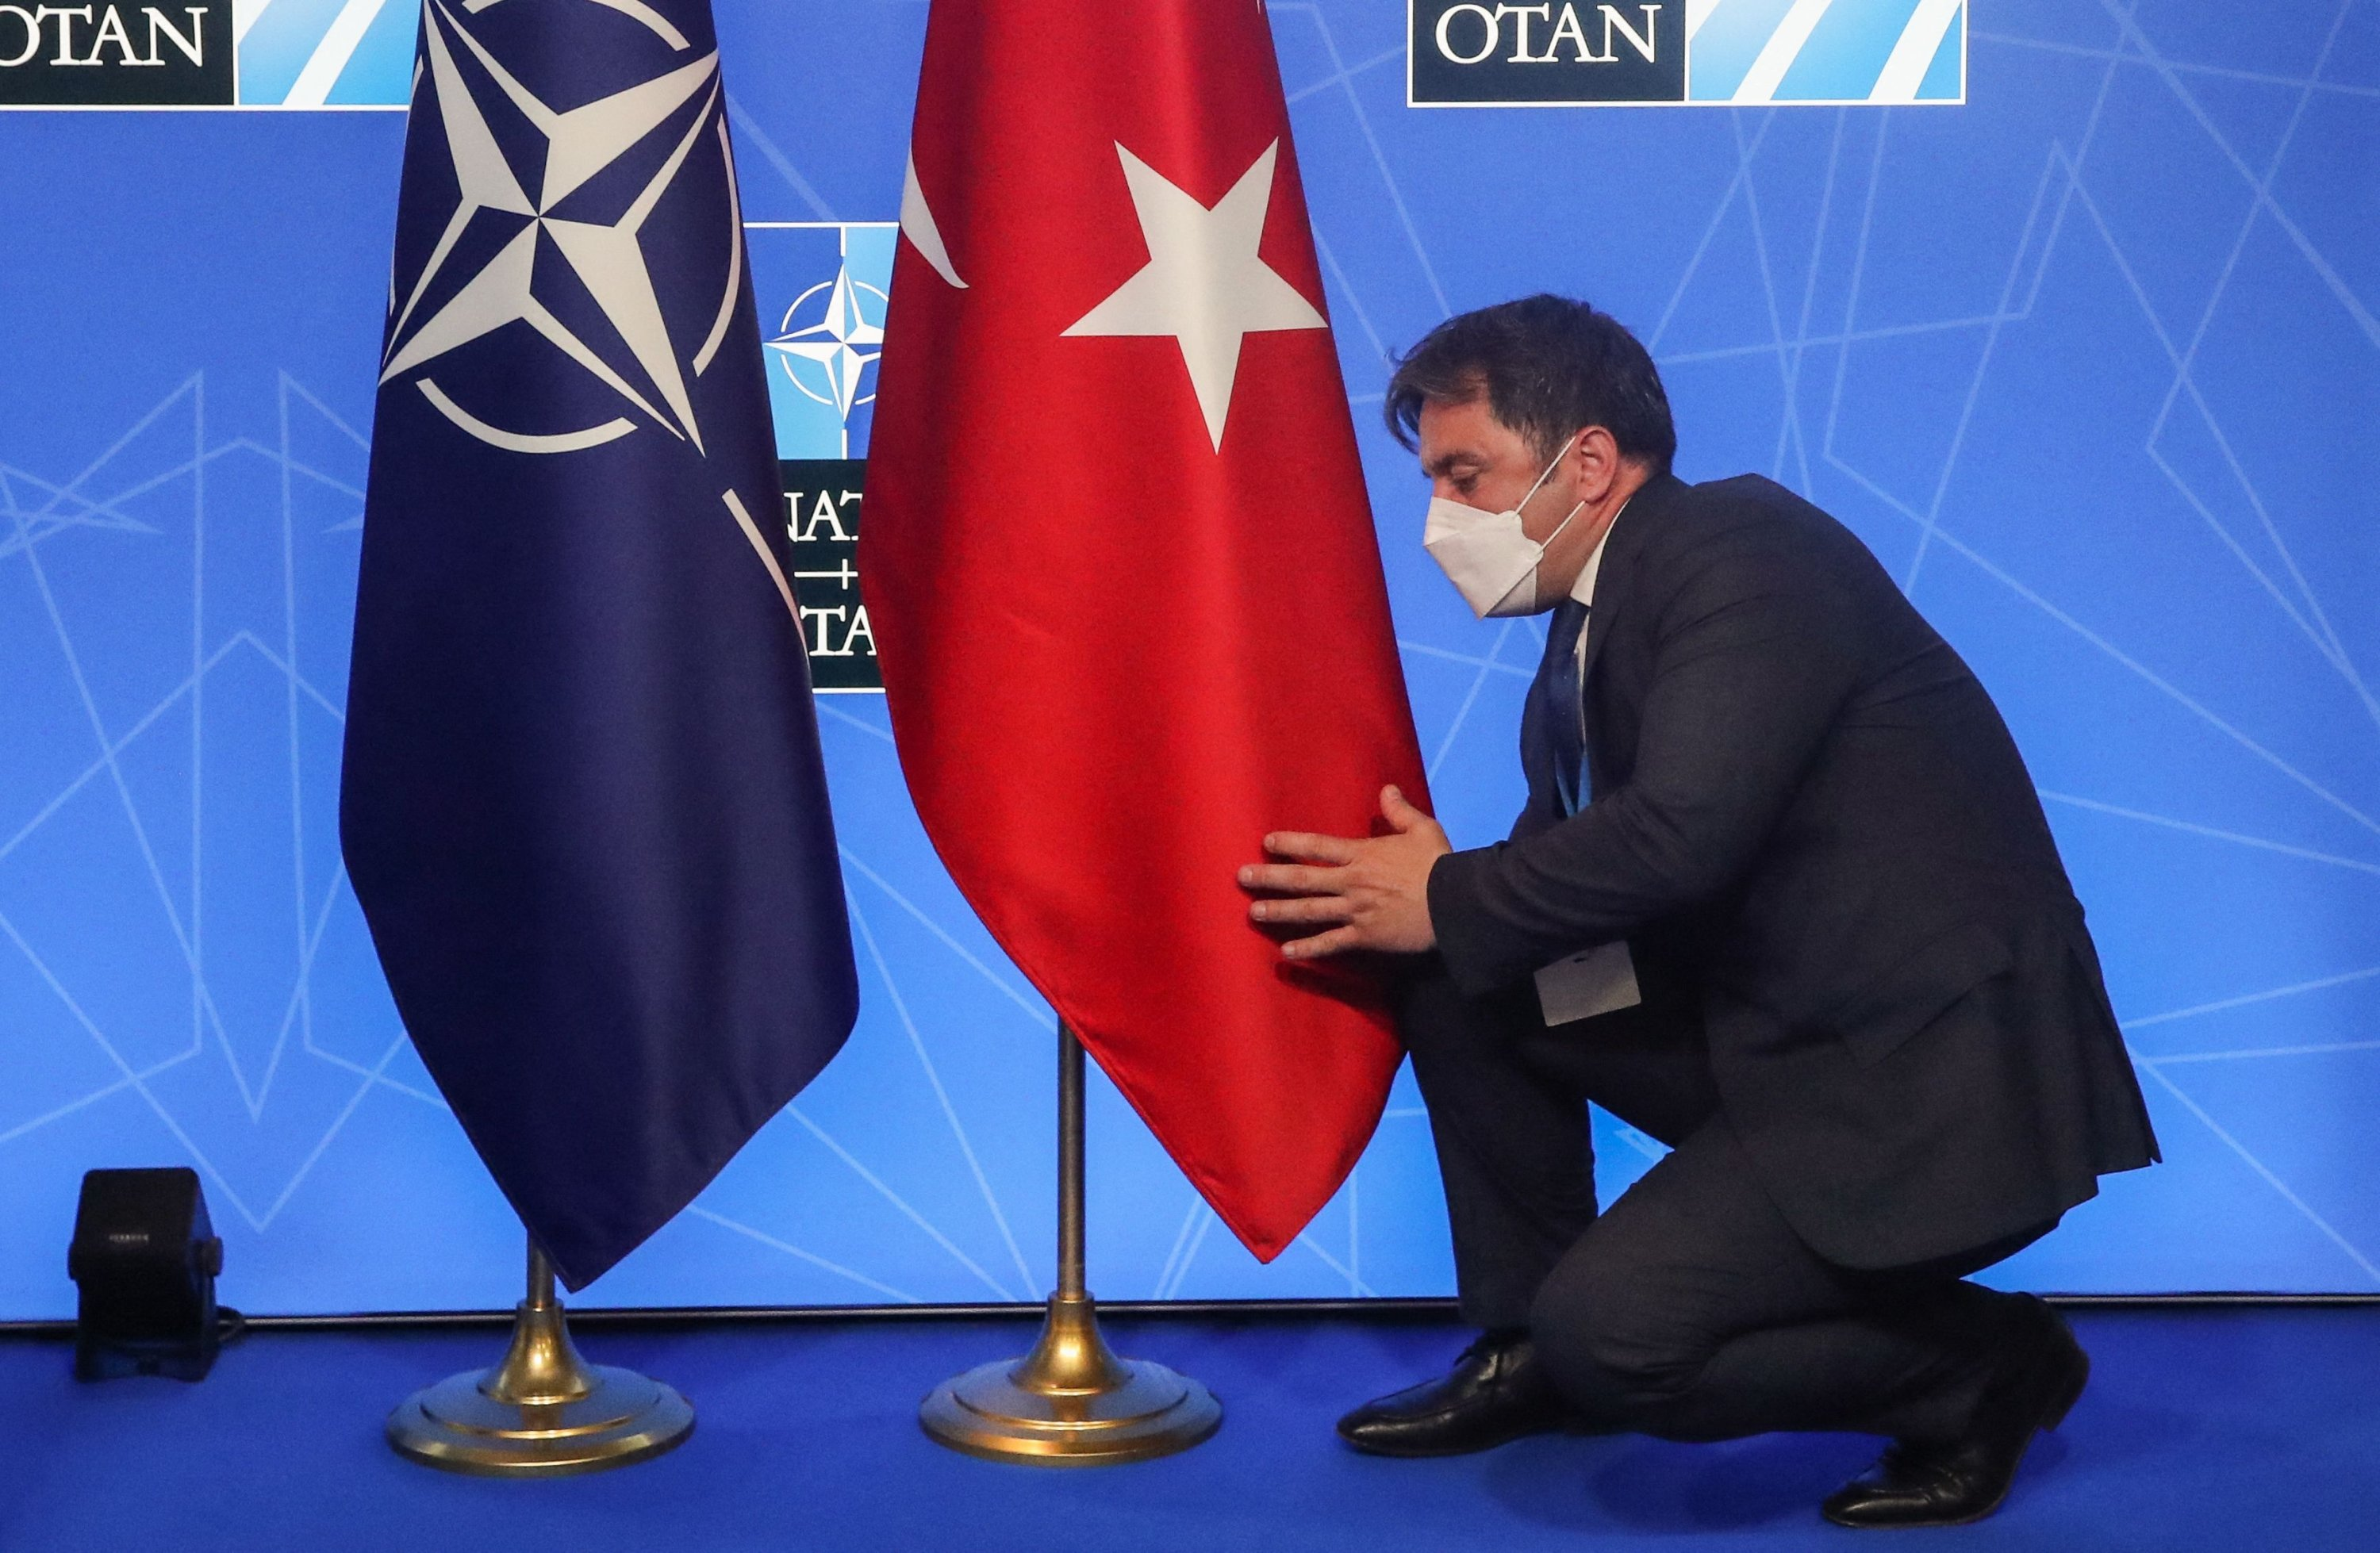 An official adjusts the Turkish flag before a news conference by President Recep Tayyip Erdoğan during the NATO summit, Brussels, Belgium, June 14, 2021. (AFP Photo)